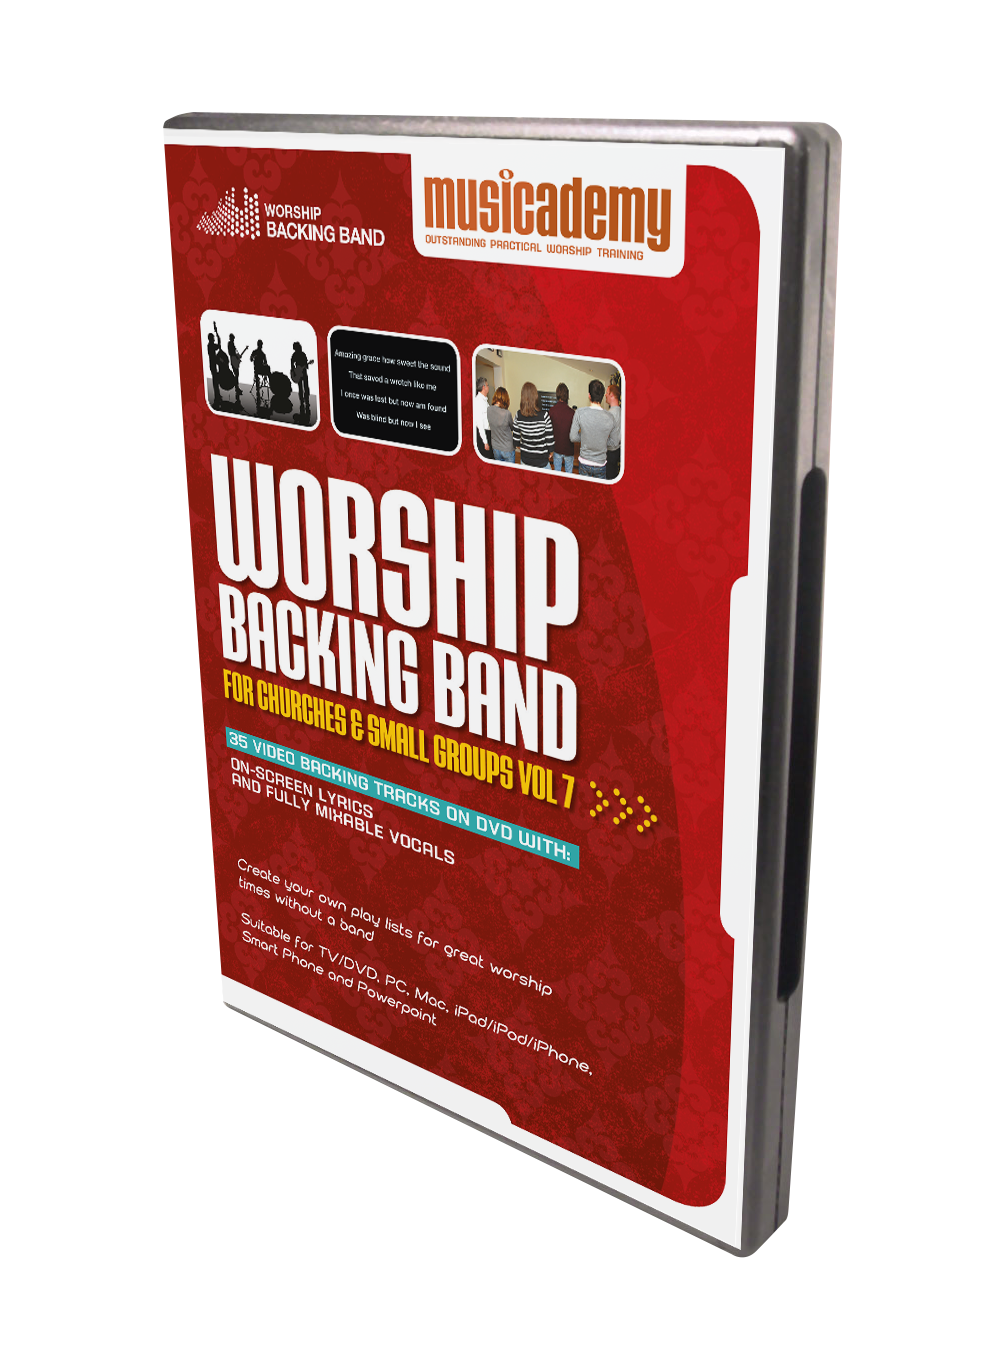 Worship Backing Band DVD Volume 7 available now